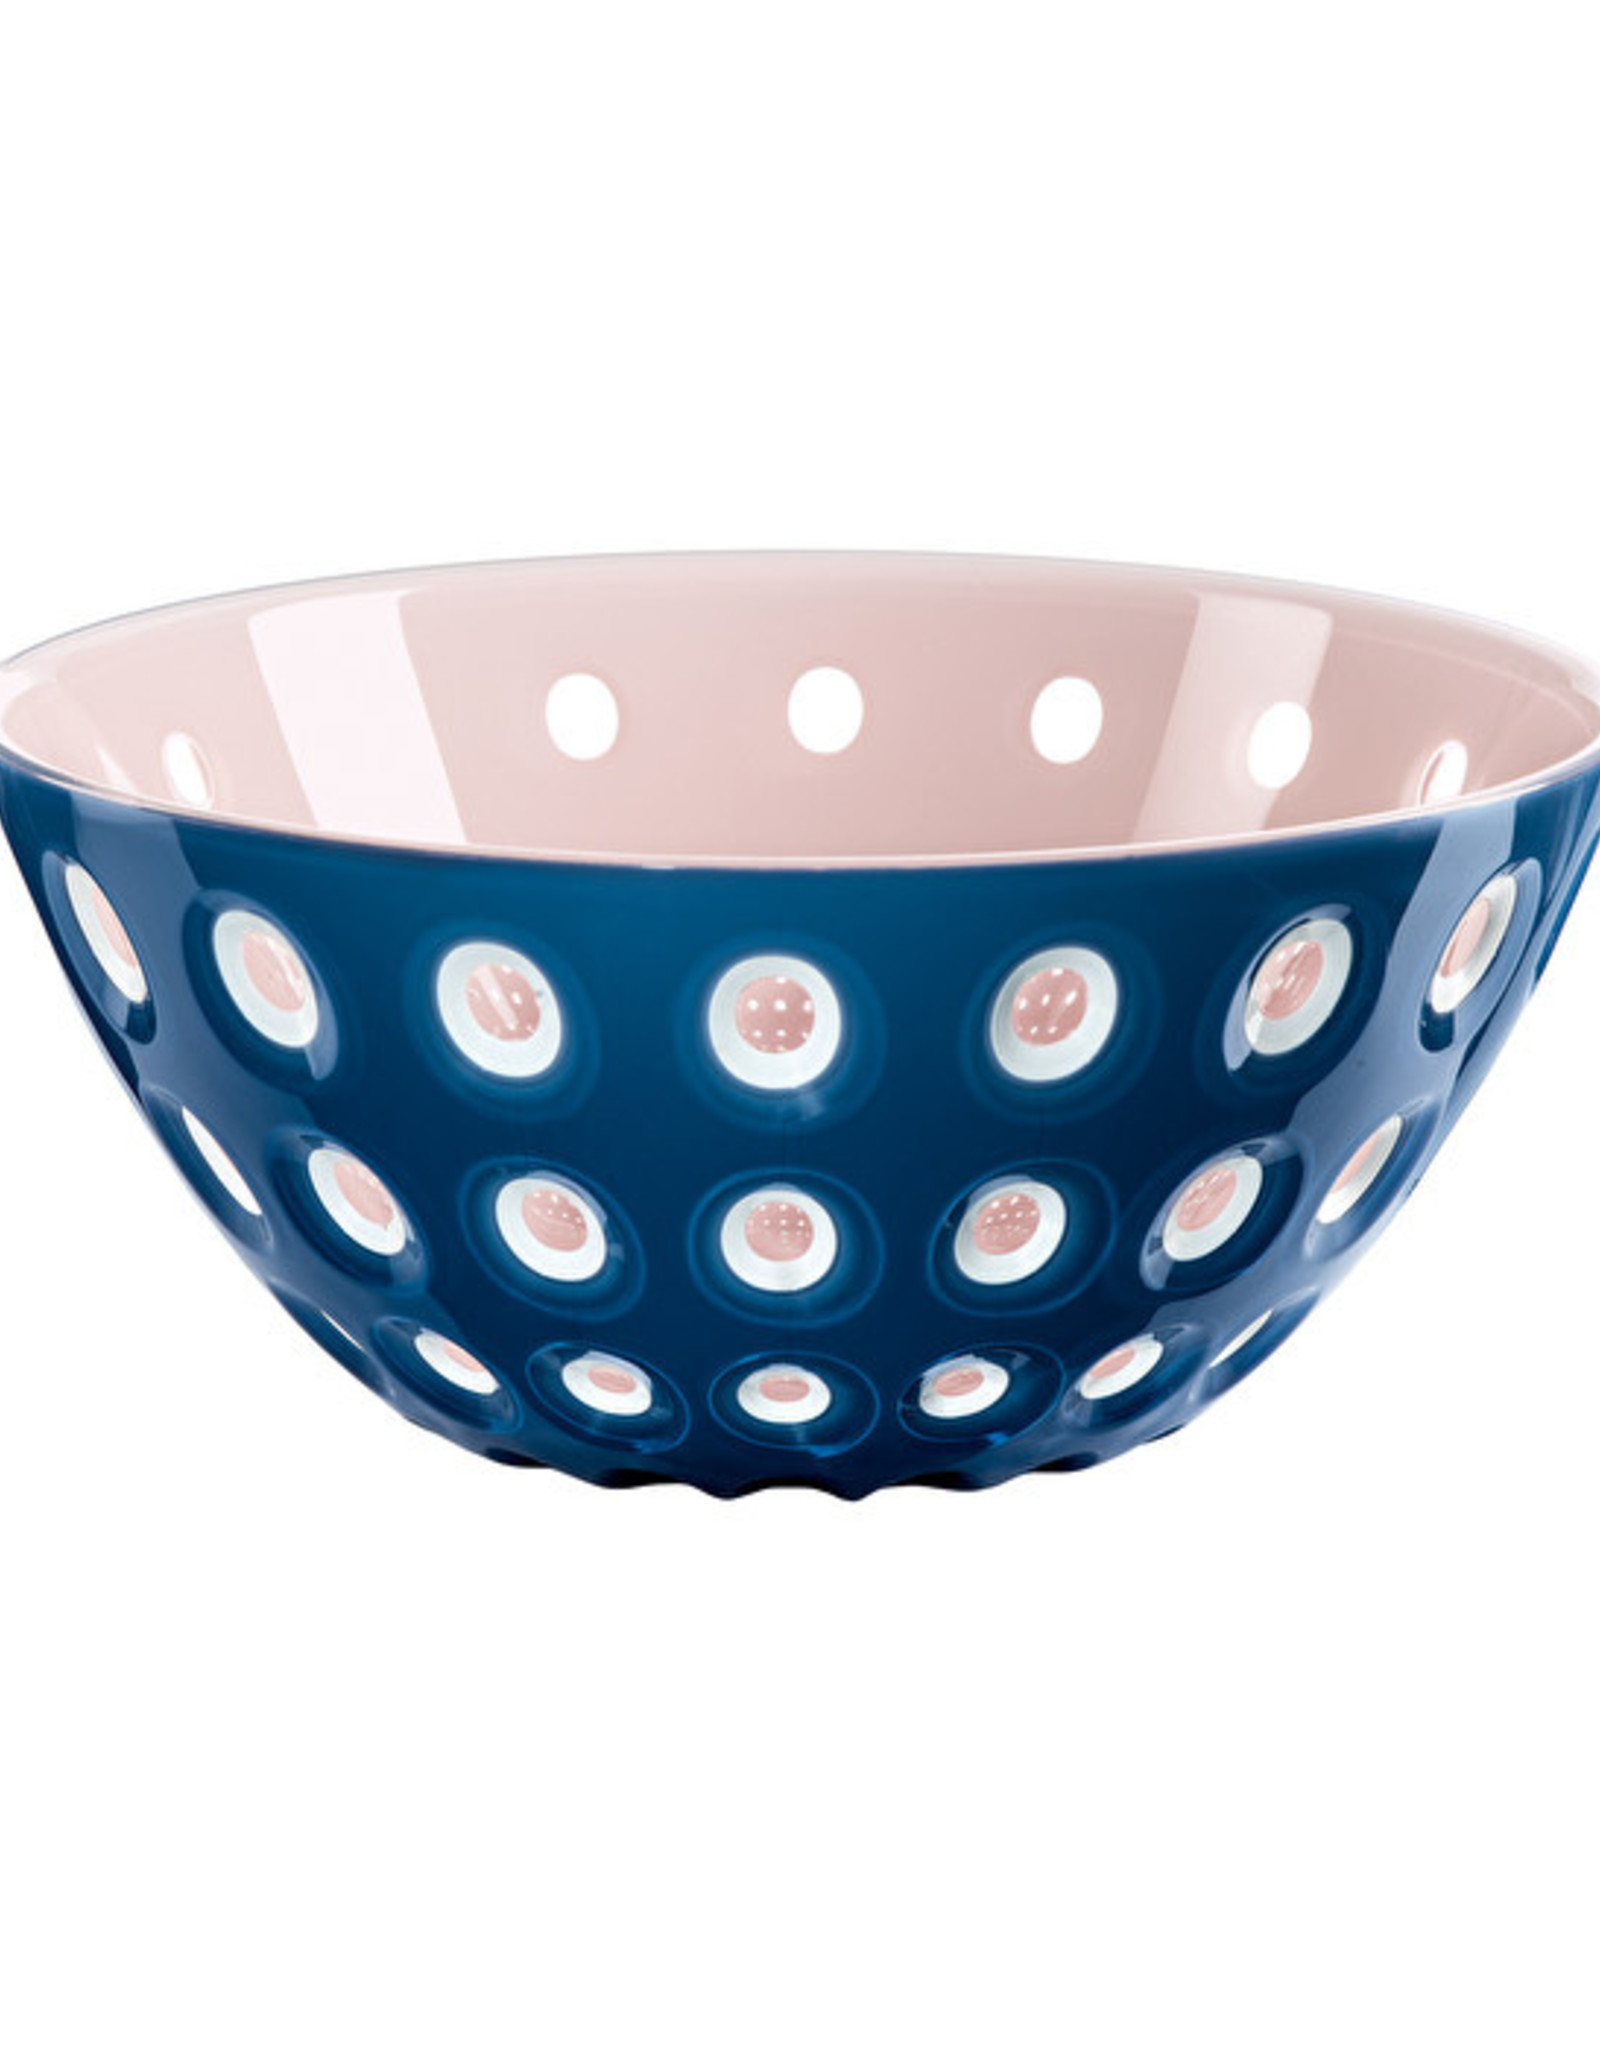 Guzzini Le Murrine Bowl